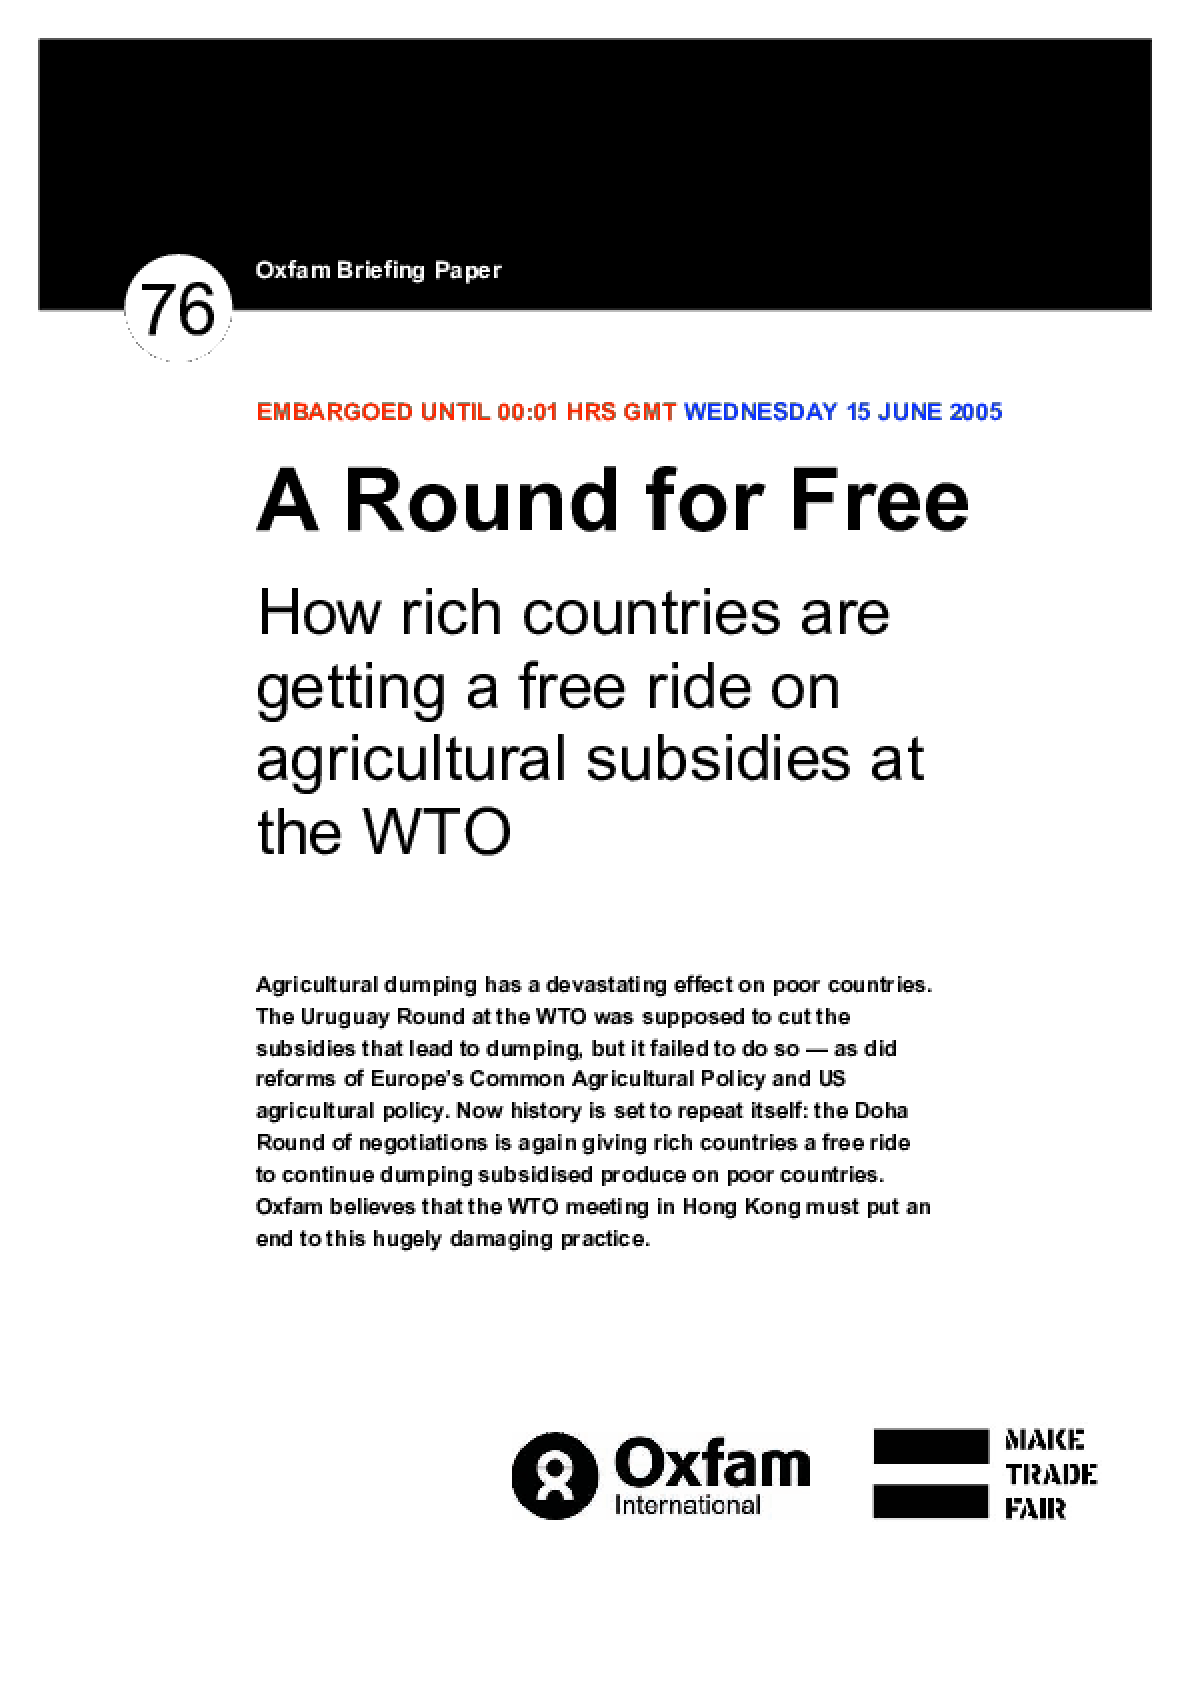 A Round for Free: How rich countries are getting a free ride on agricultural subsidies at the WTO